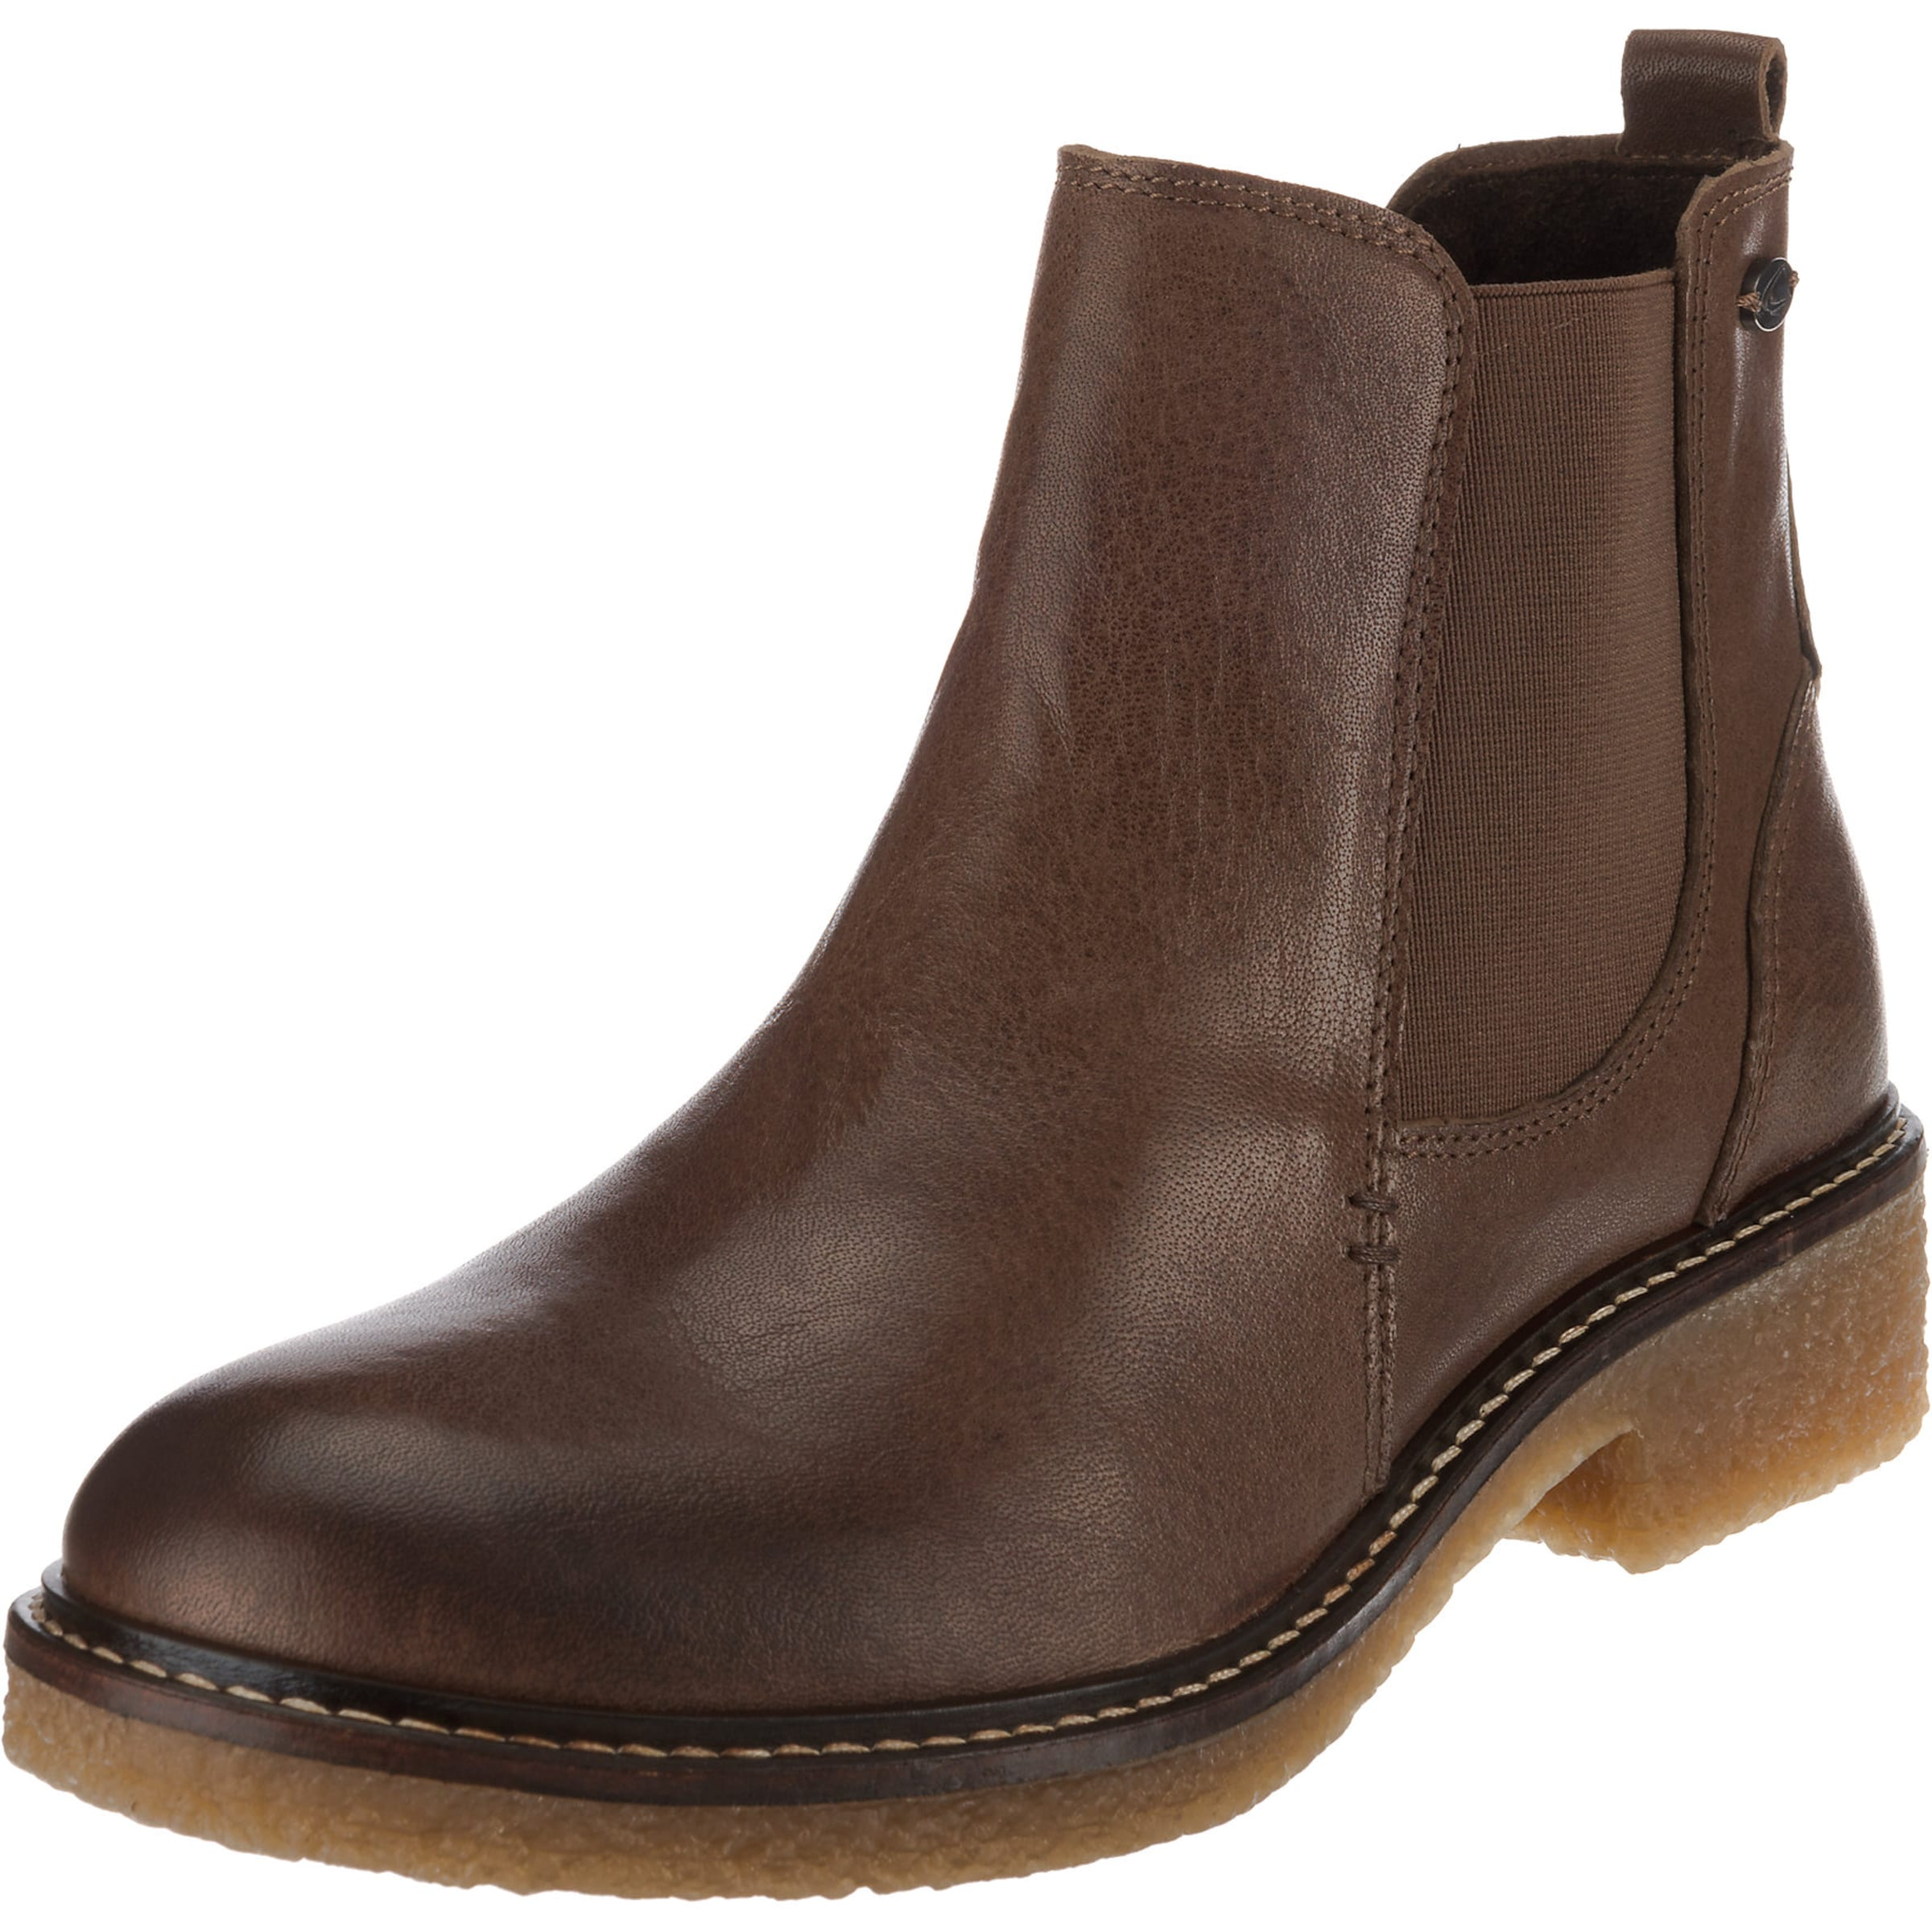 In Boots Active 74' Braun Camel 'palm lcFK1J